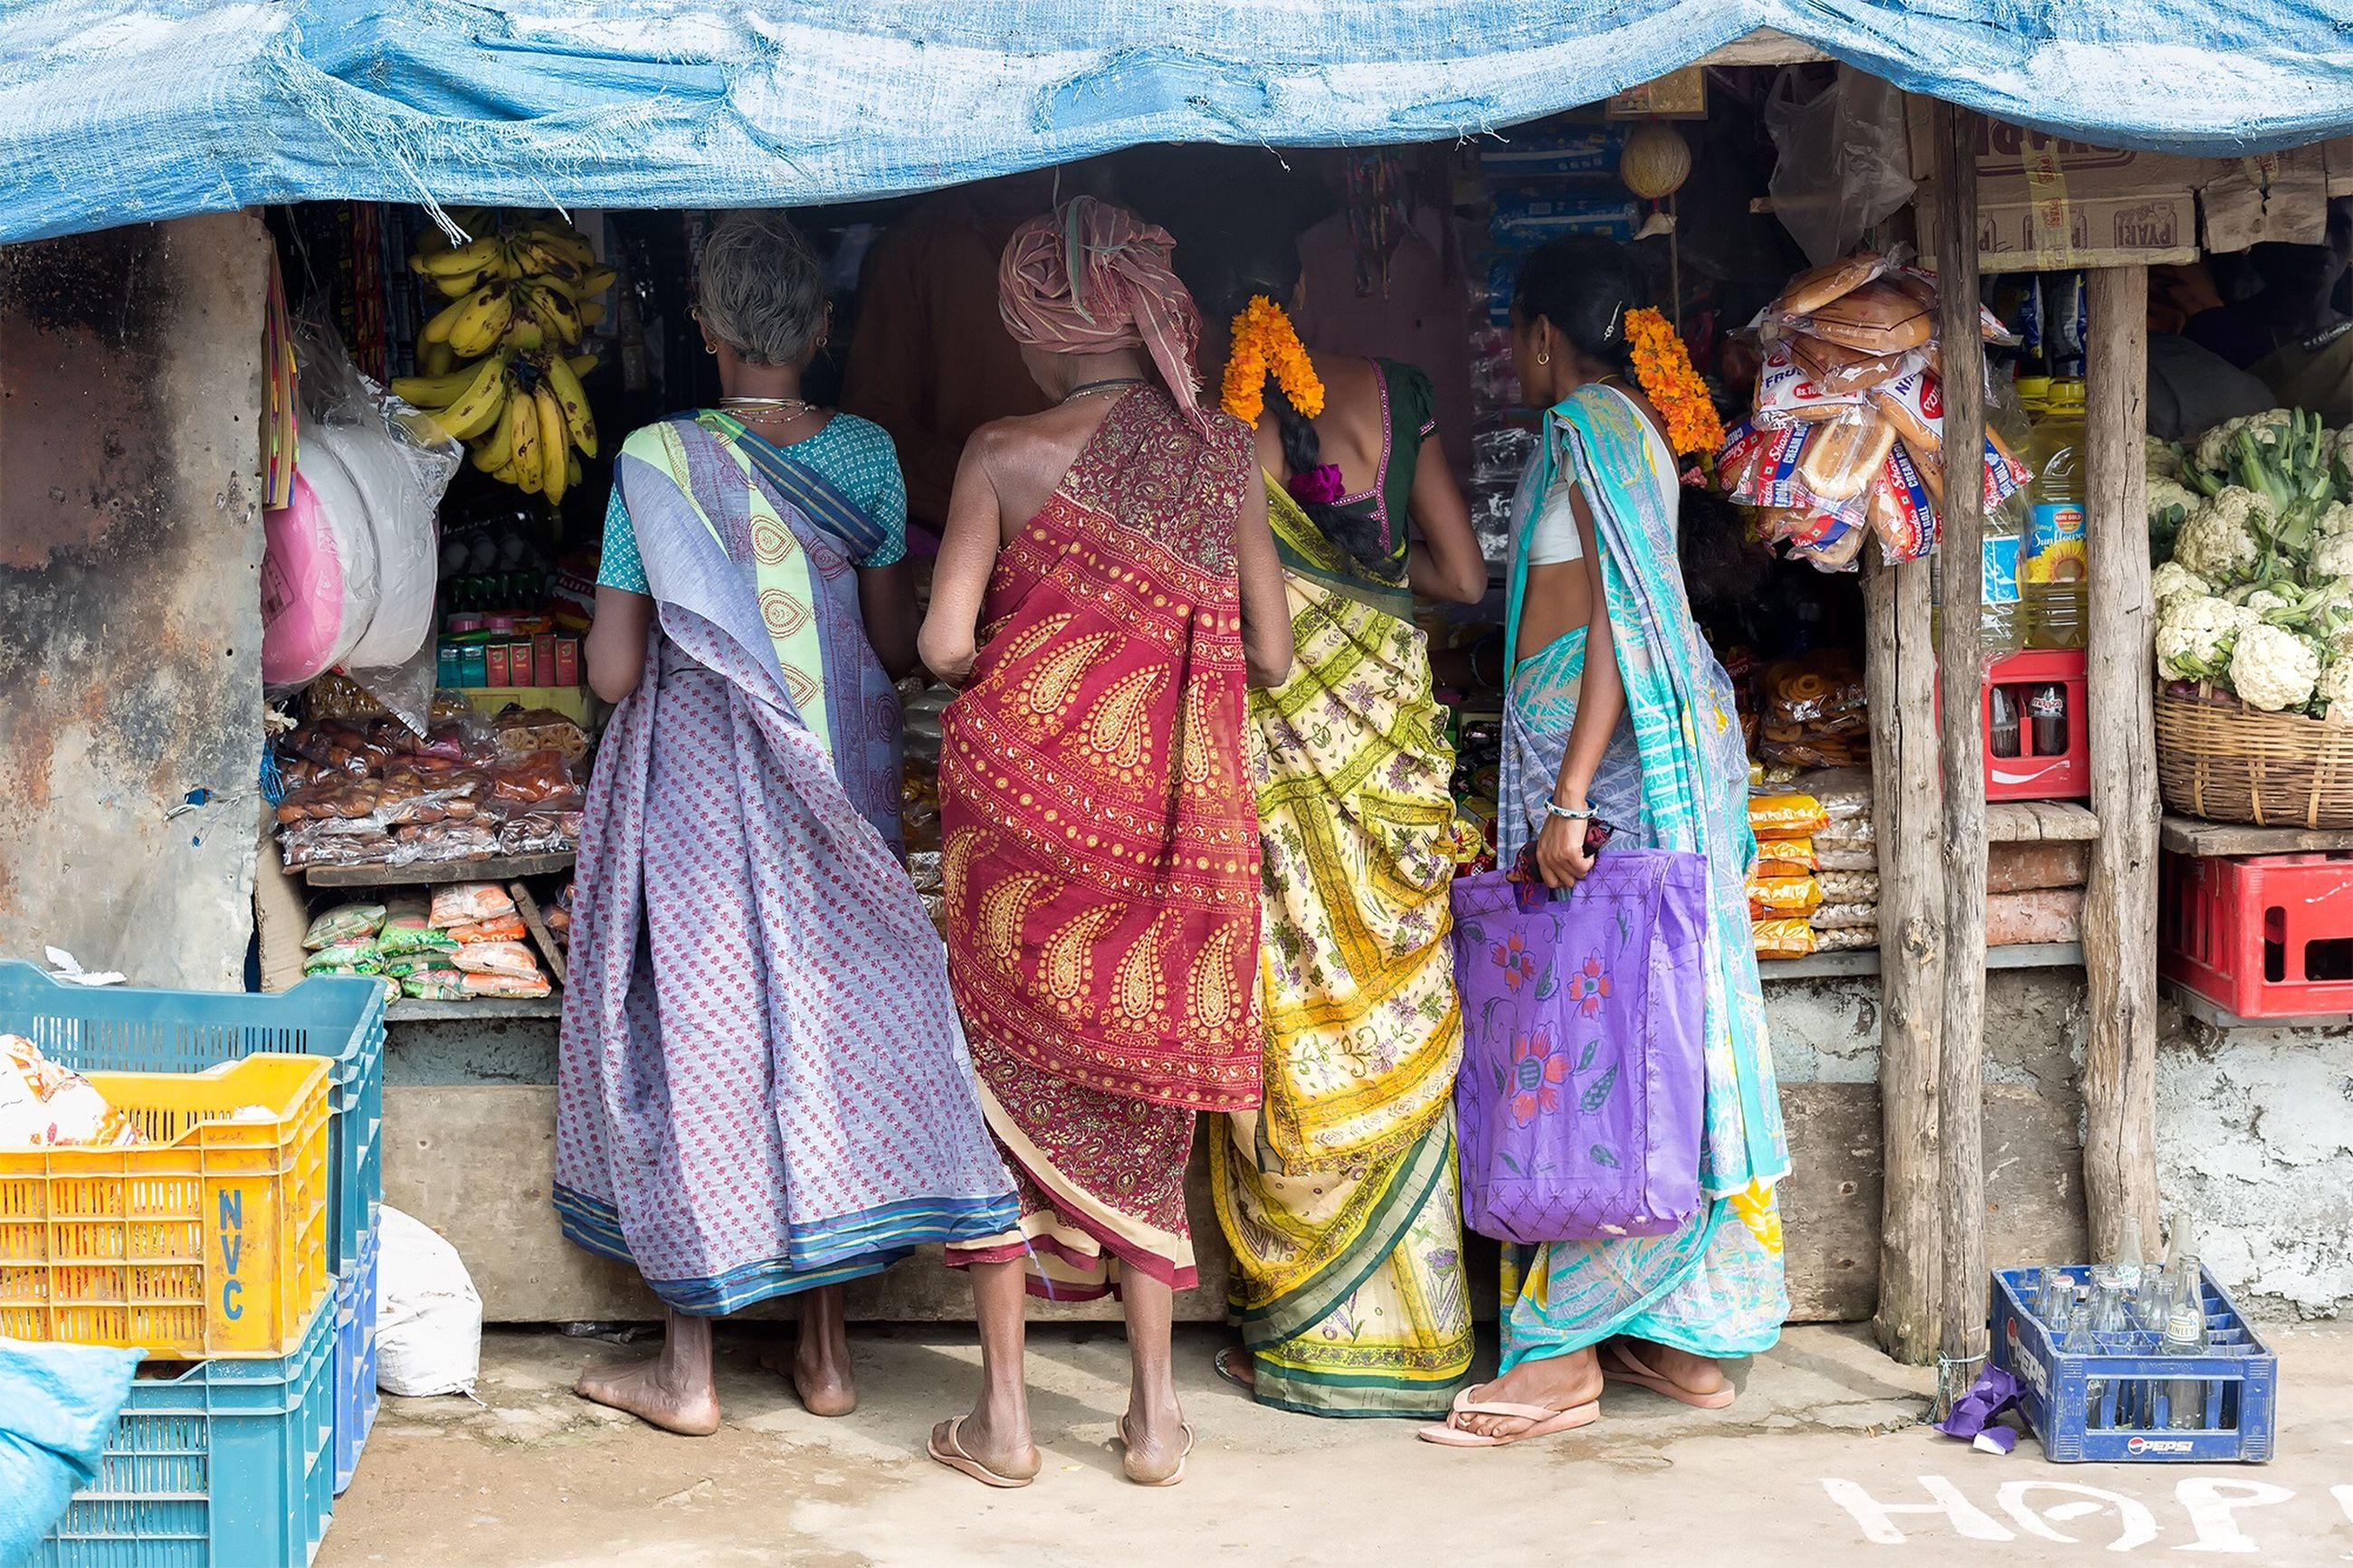 men, market stall, market, retail, for sale, small business, rear view, lifestyles, person, selling, building exterior, casual clothing, built structure, leisure activity, architecture, outdoors, street